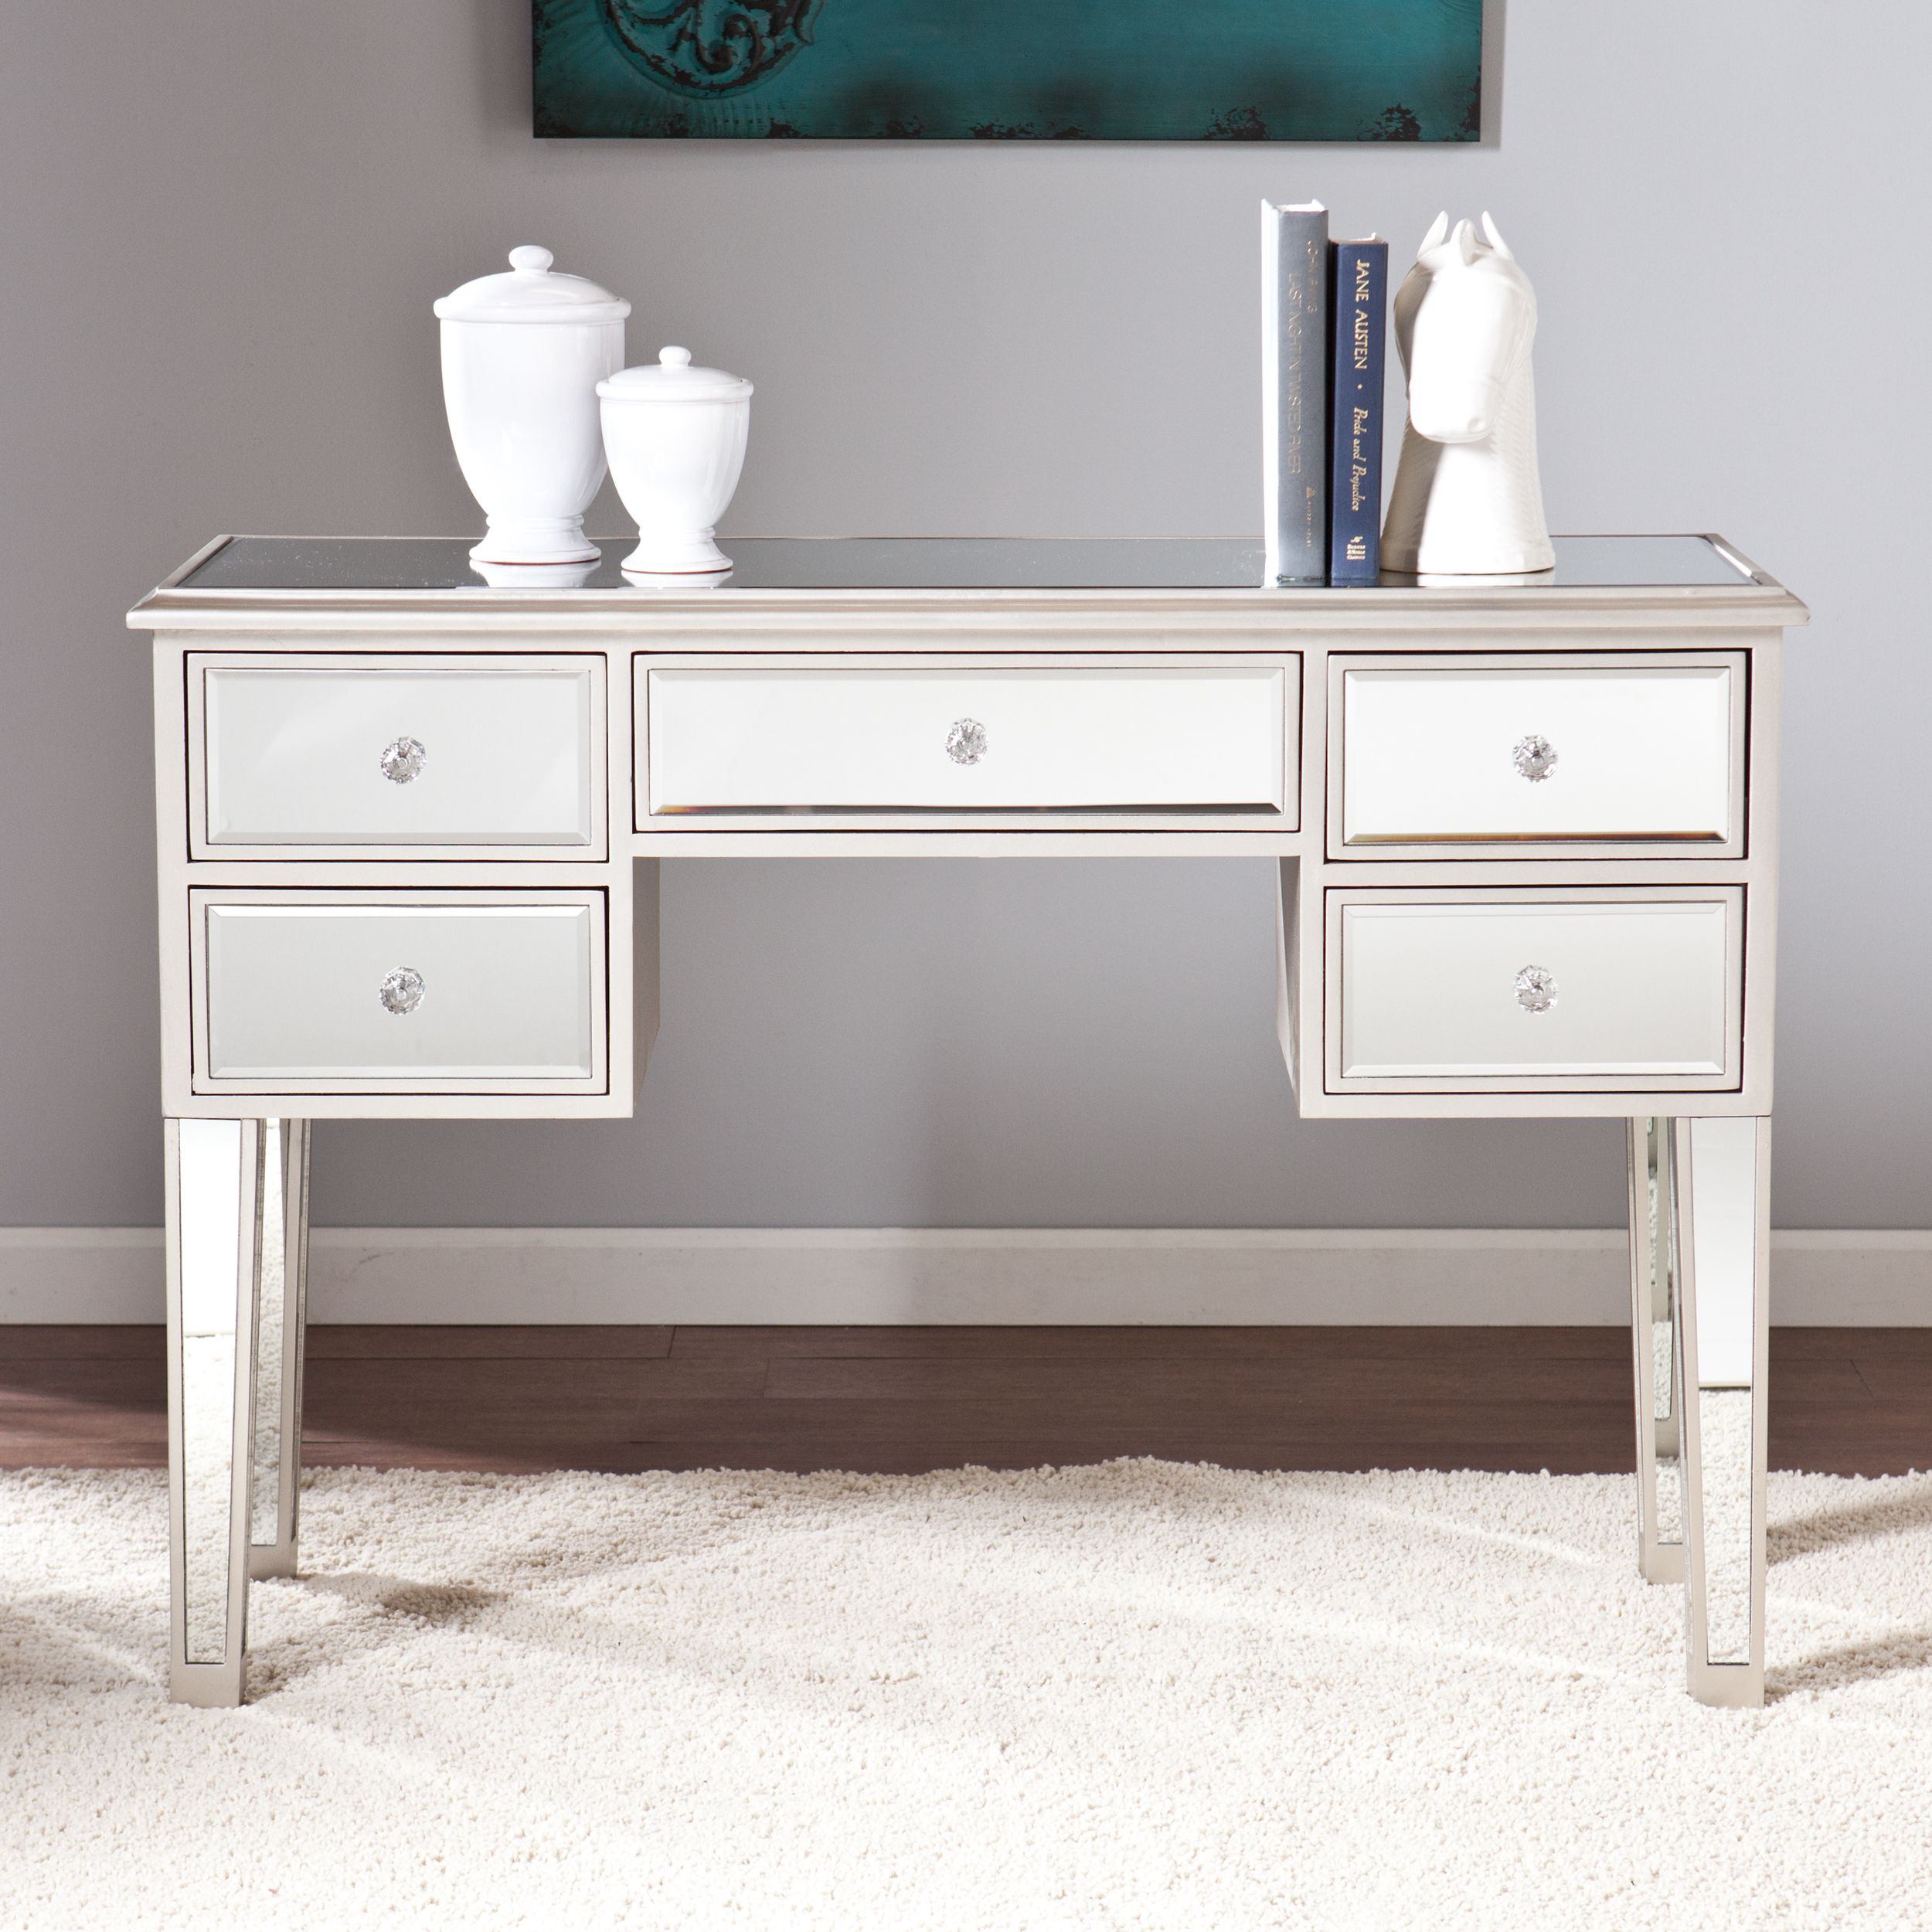 Upton Home Monroe Mirrored Console Table Shopping The Best Deals On Coffee